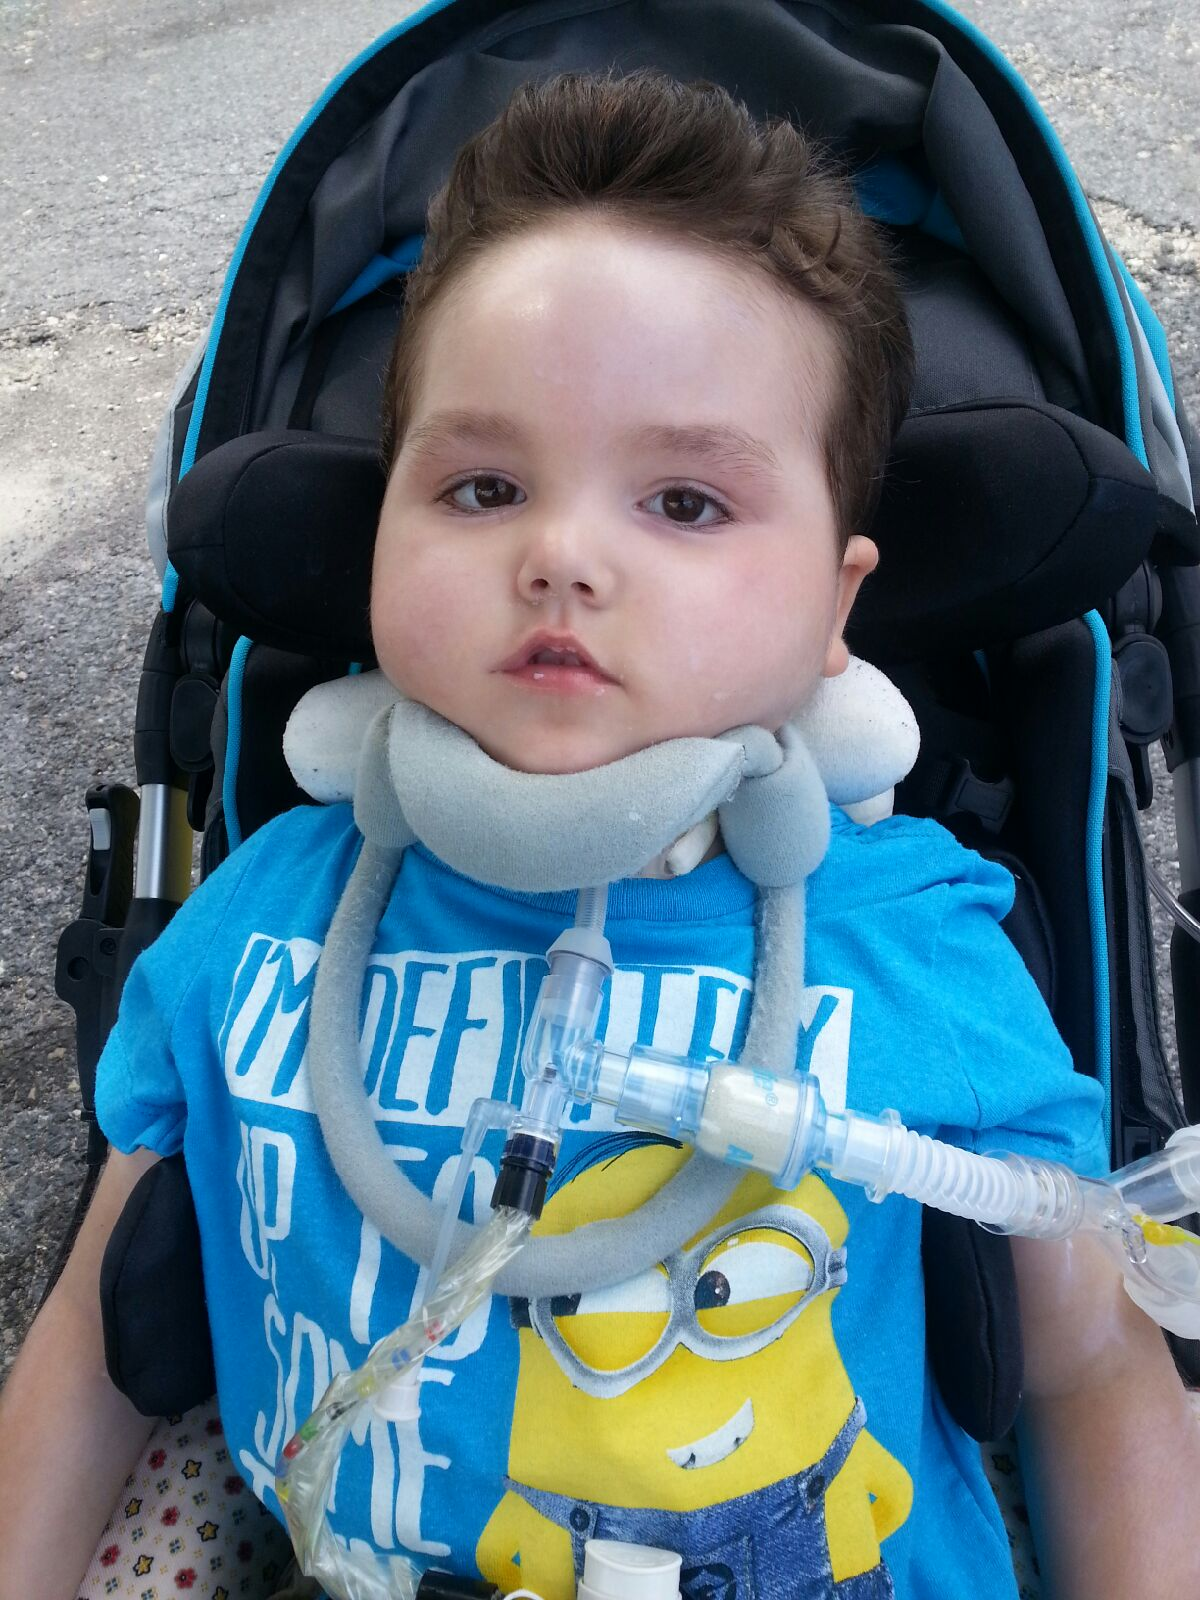 Young Arthur Jr. suffers from TK-2 mitochondrial DNA depletion syndrome, a rare disease